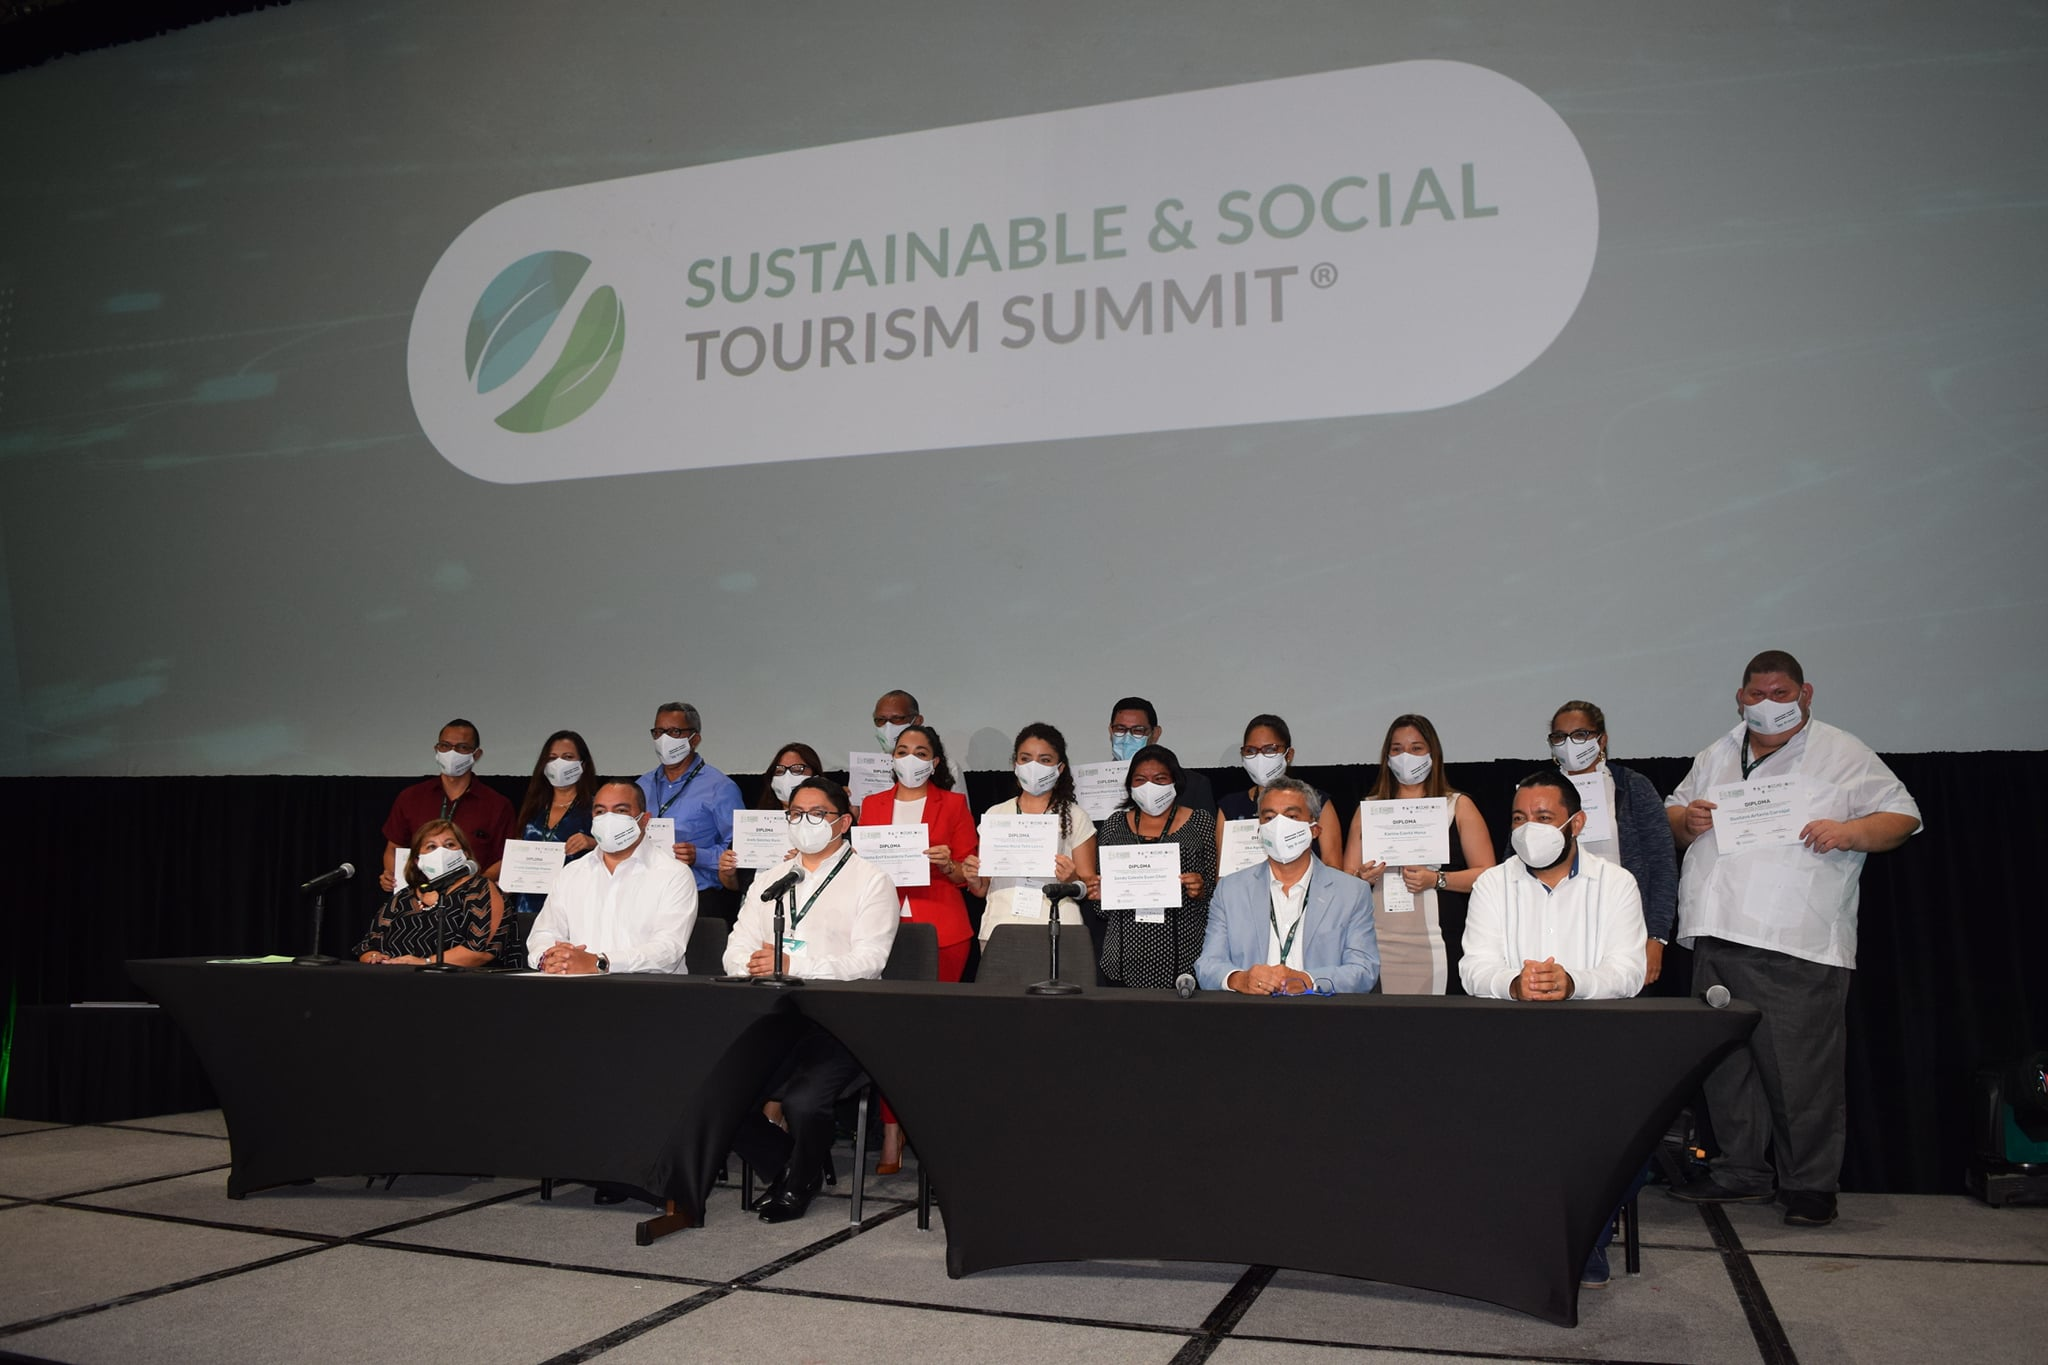 At the Sustainable & Social Tourism Summit, the Diploma in Sustainable and Social Tourism concluded successfully